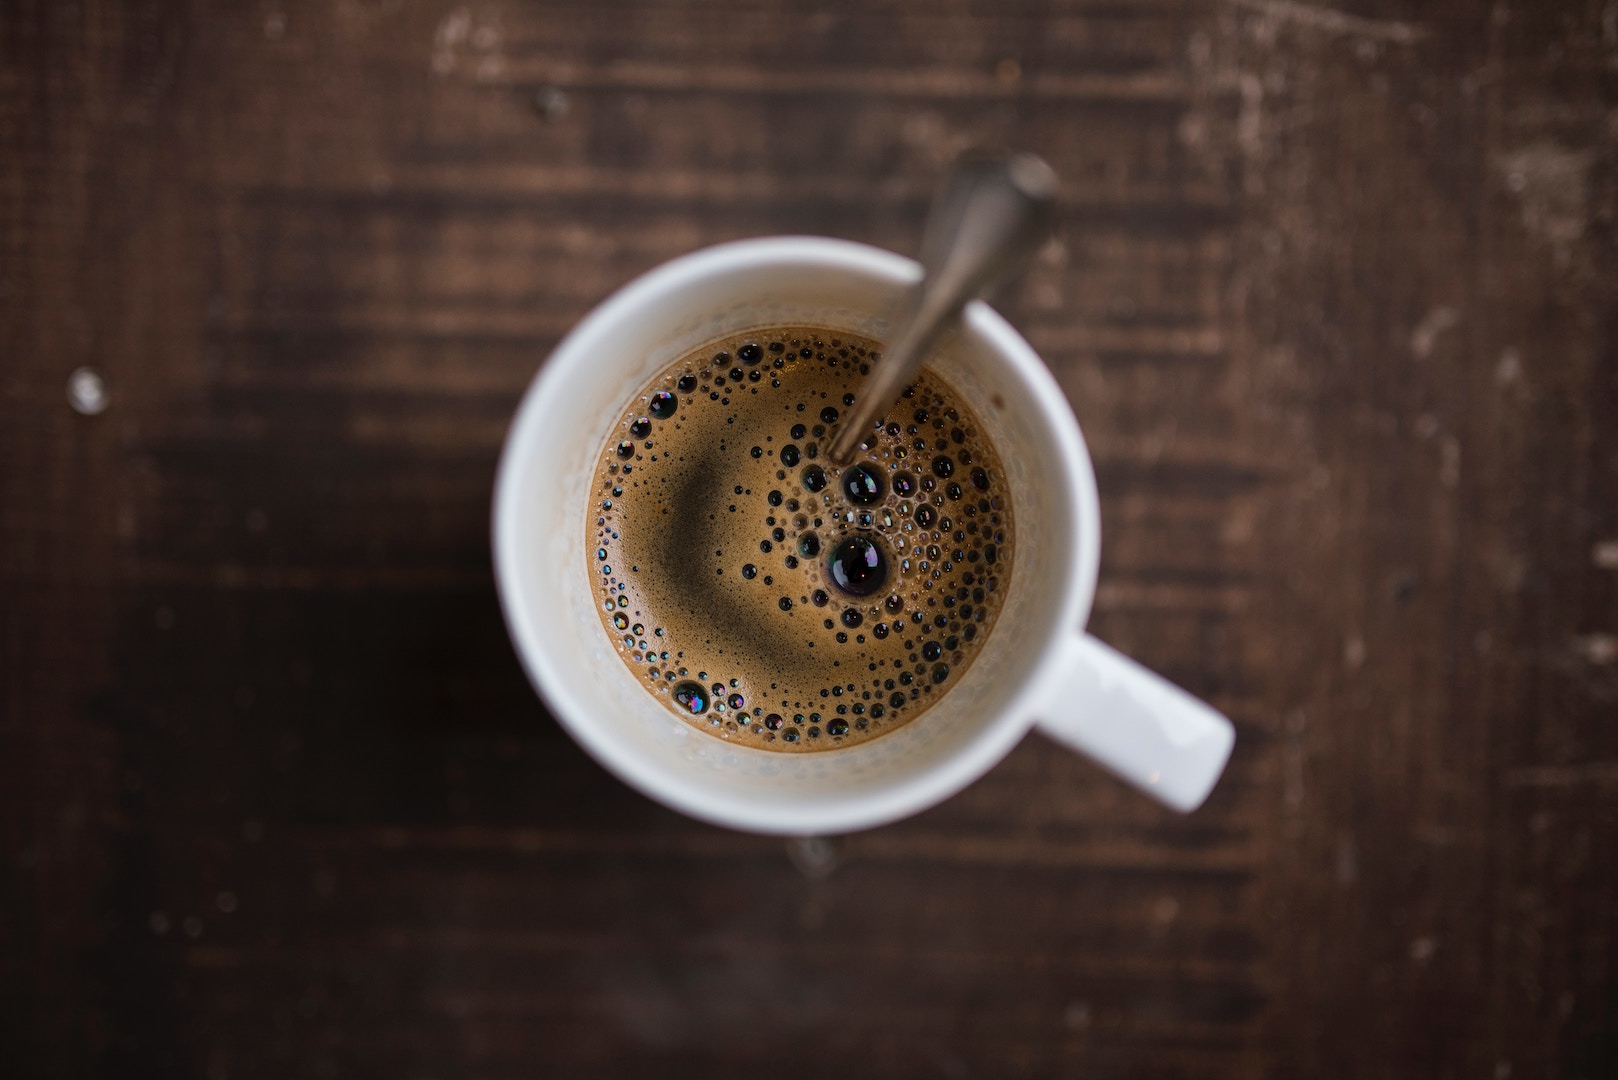 Cafe Cubano Cafe Cubano in Little Havana Photo by Asoggetti on Unsplash